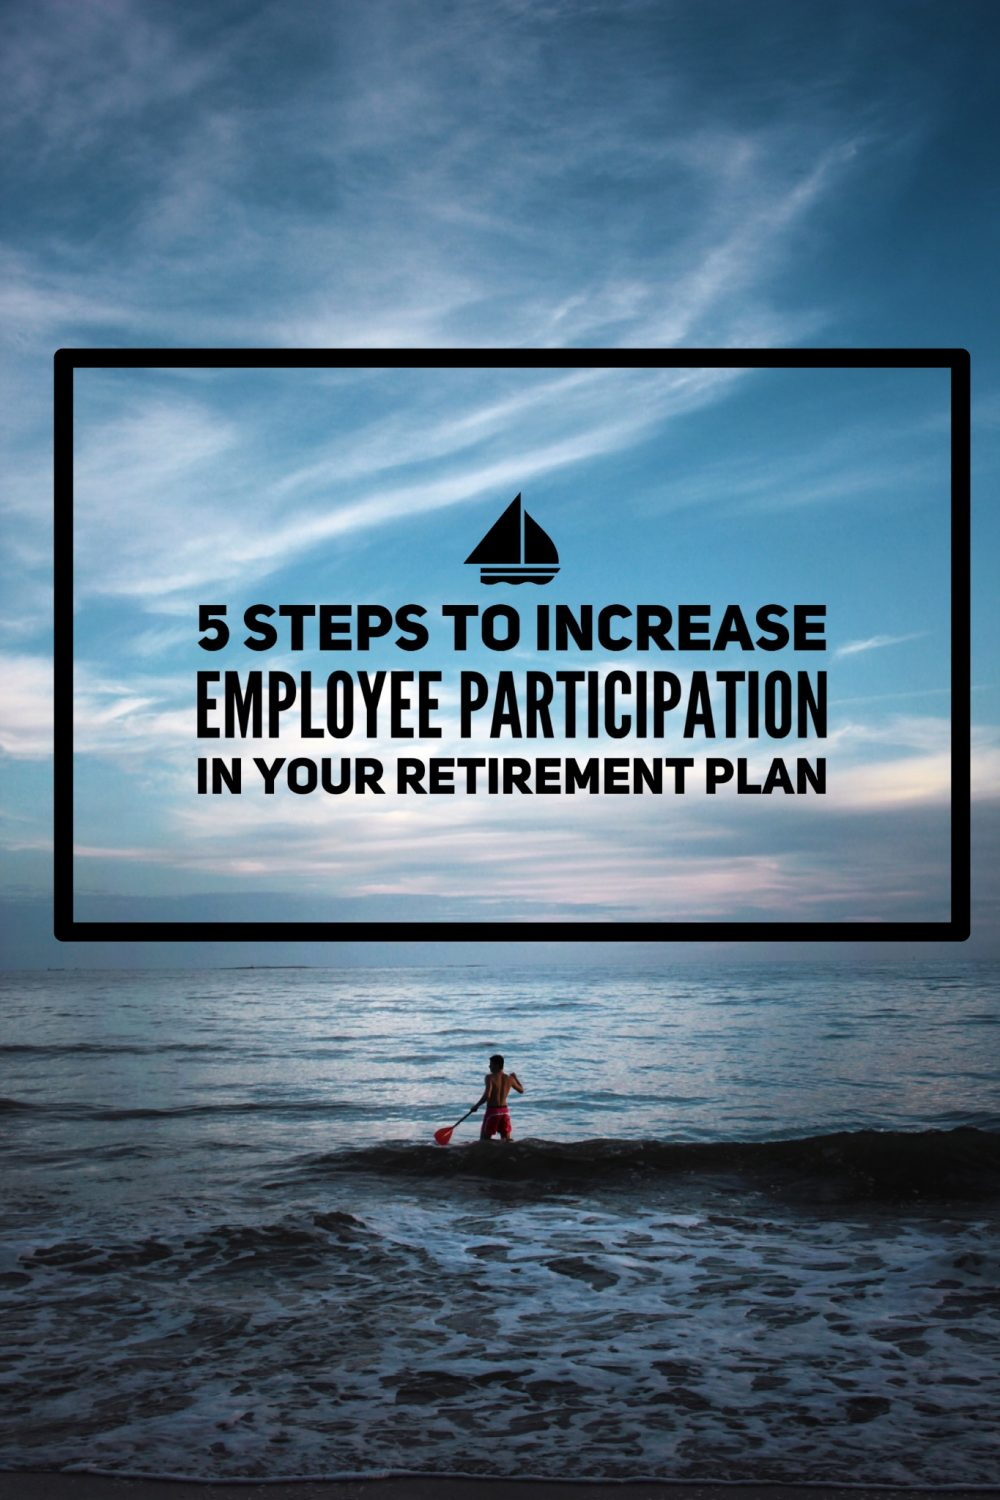 increase-employee-participation-in-retirement-plan